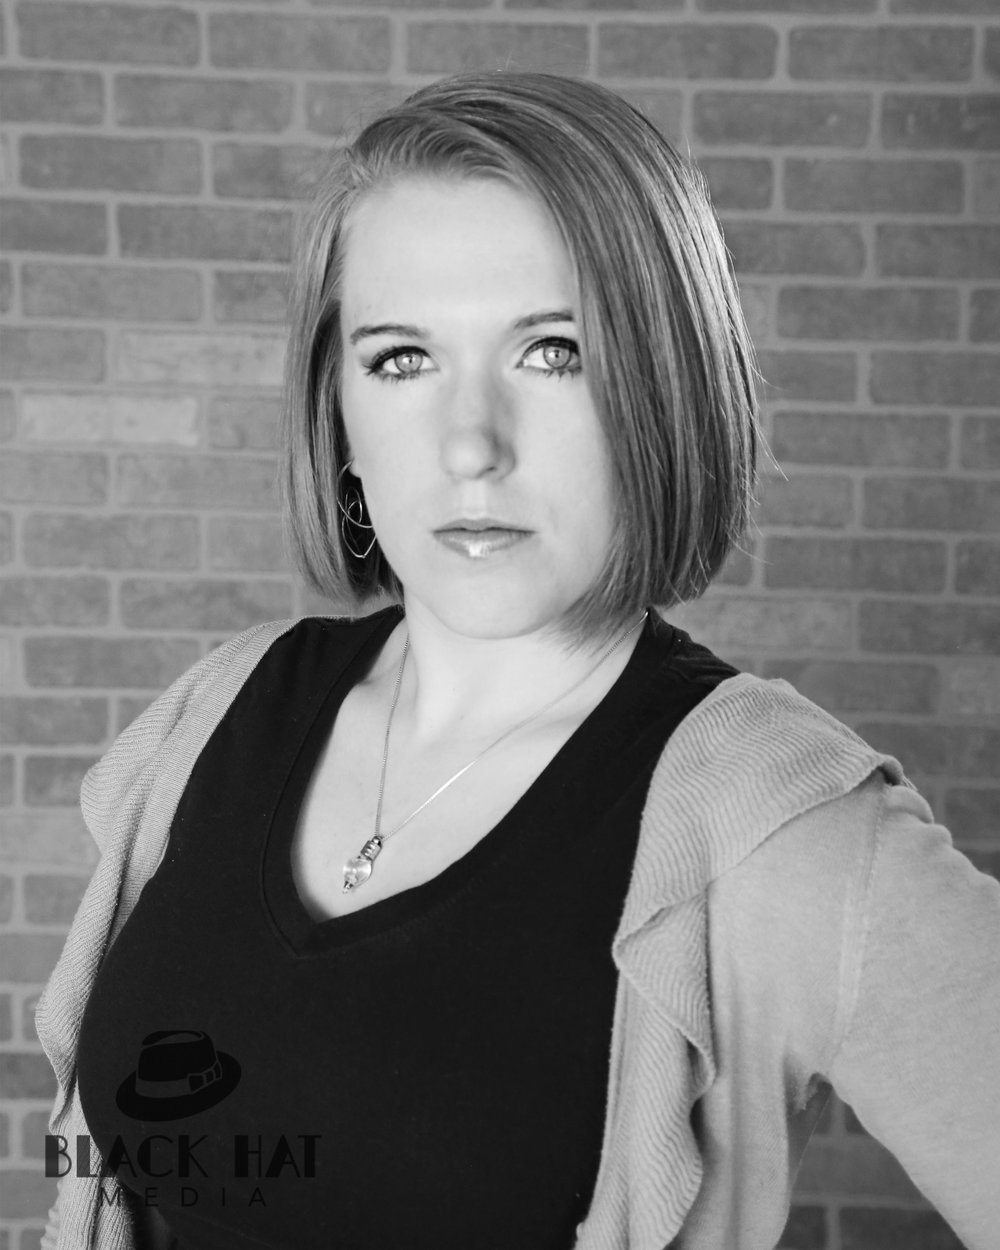 Emily Straight Hair Headshot bw.jpg